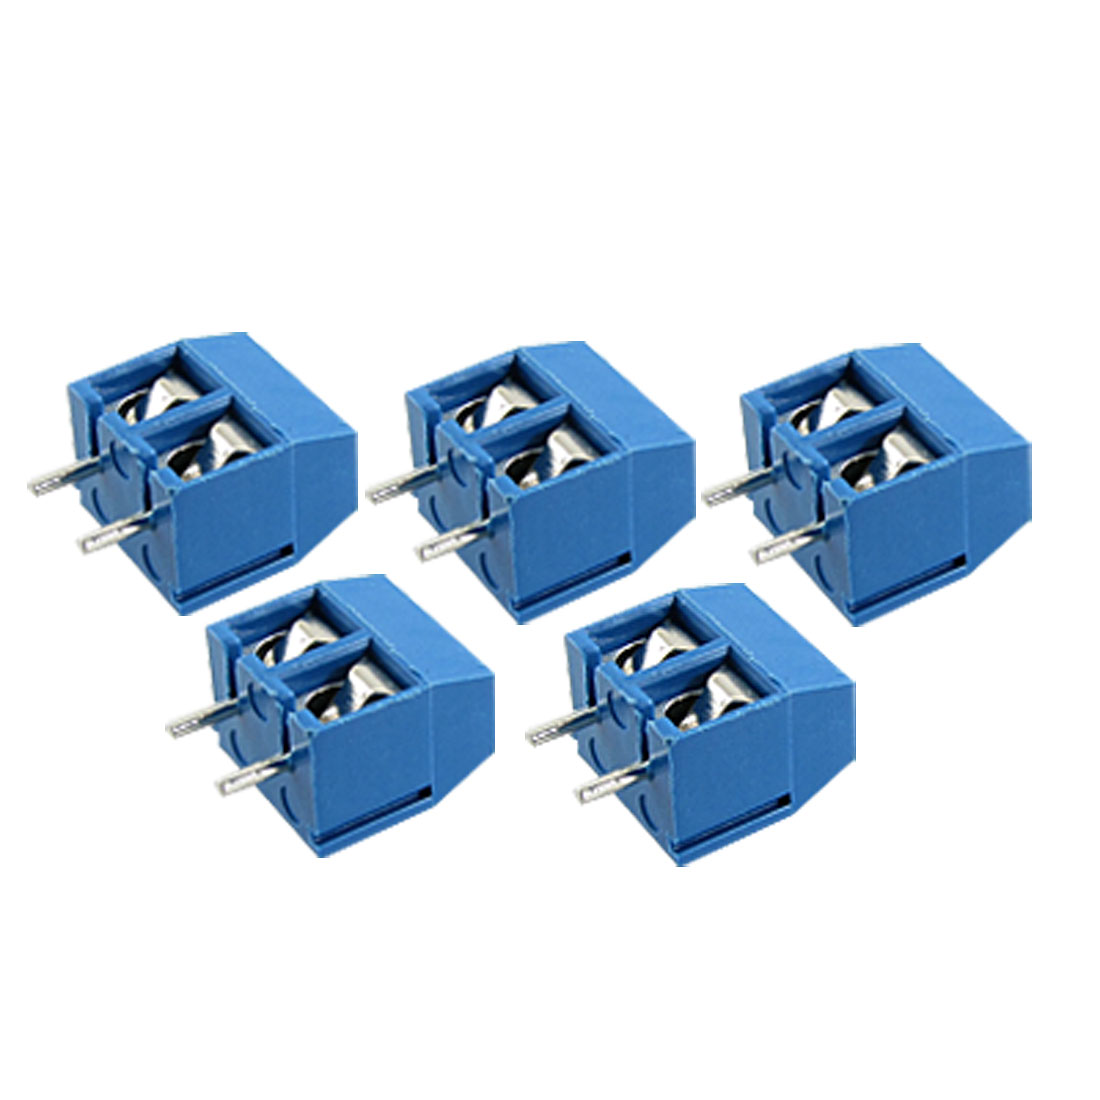 5 Pcs 2 Pin 2-way Screw Terminal Block Connector 5.08mm Pitch Panel PCB Mount